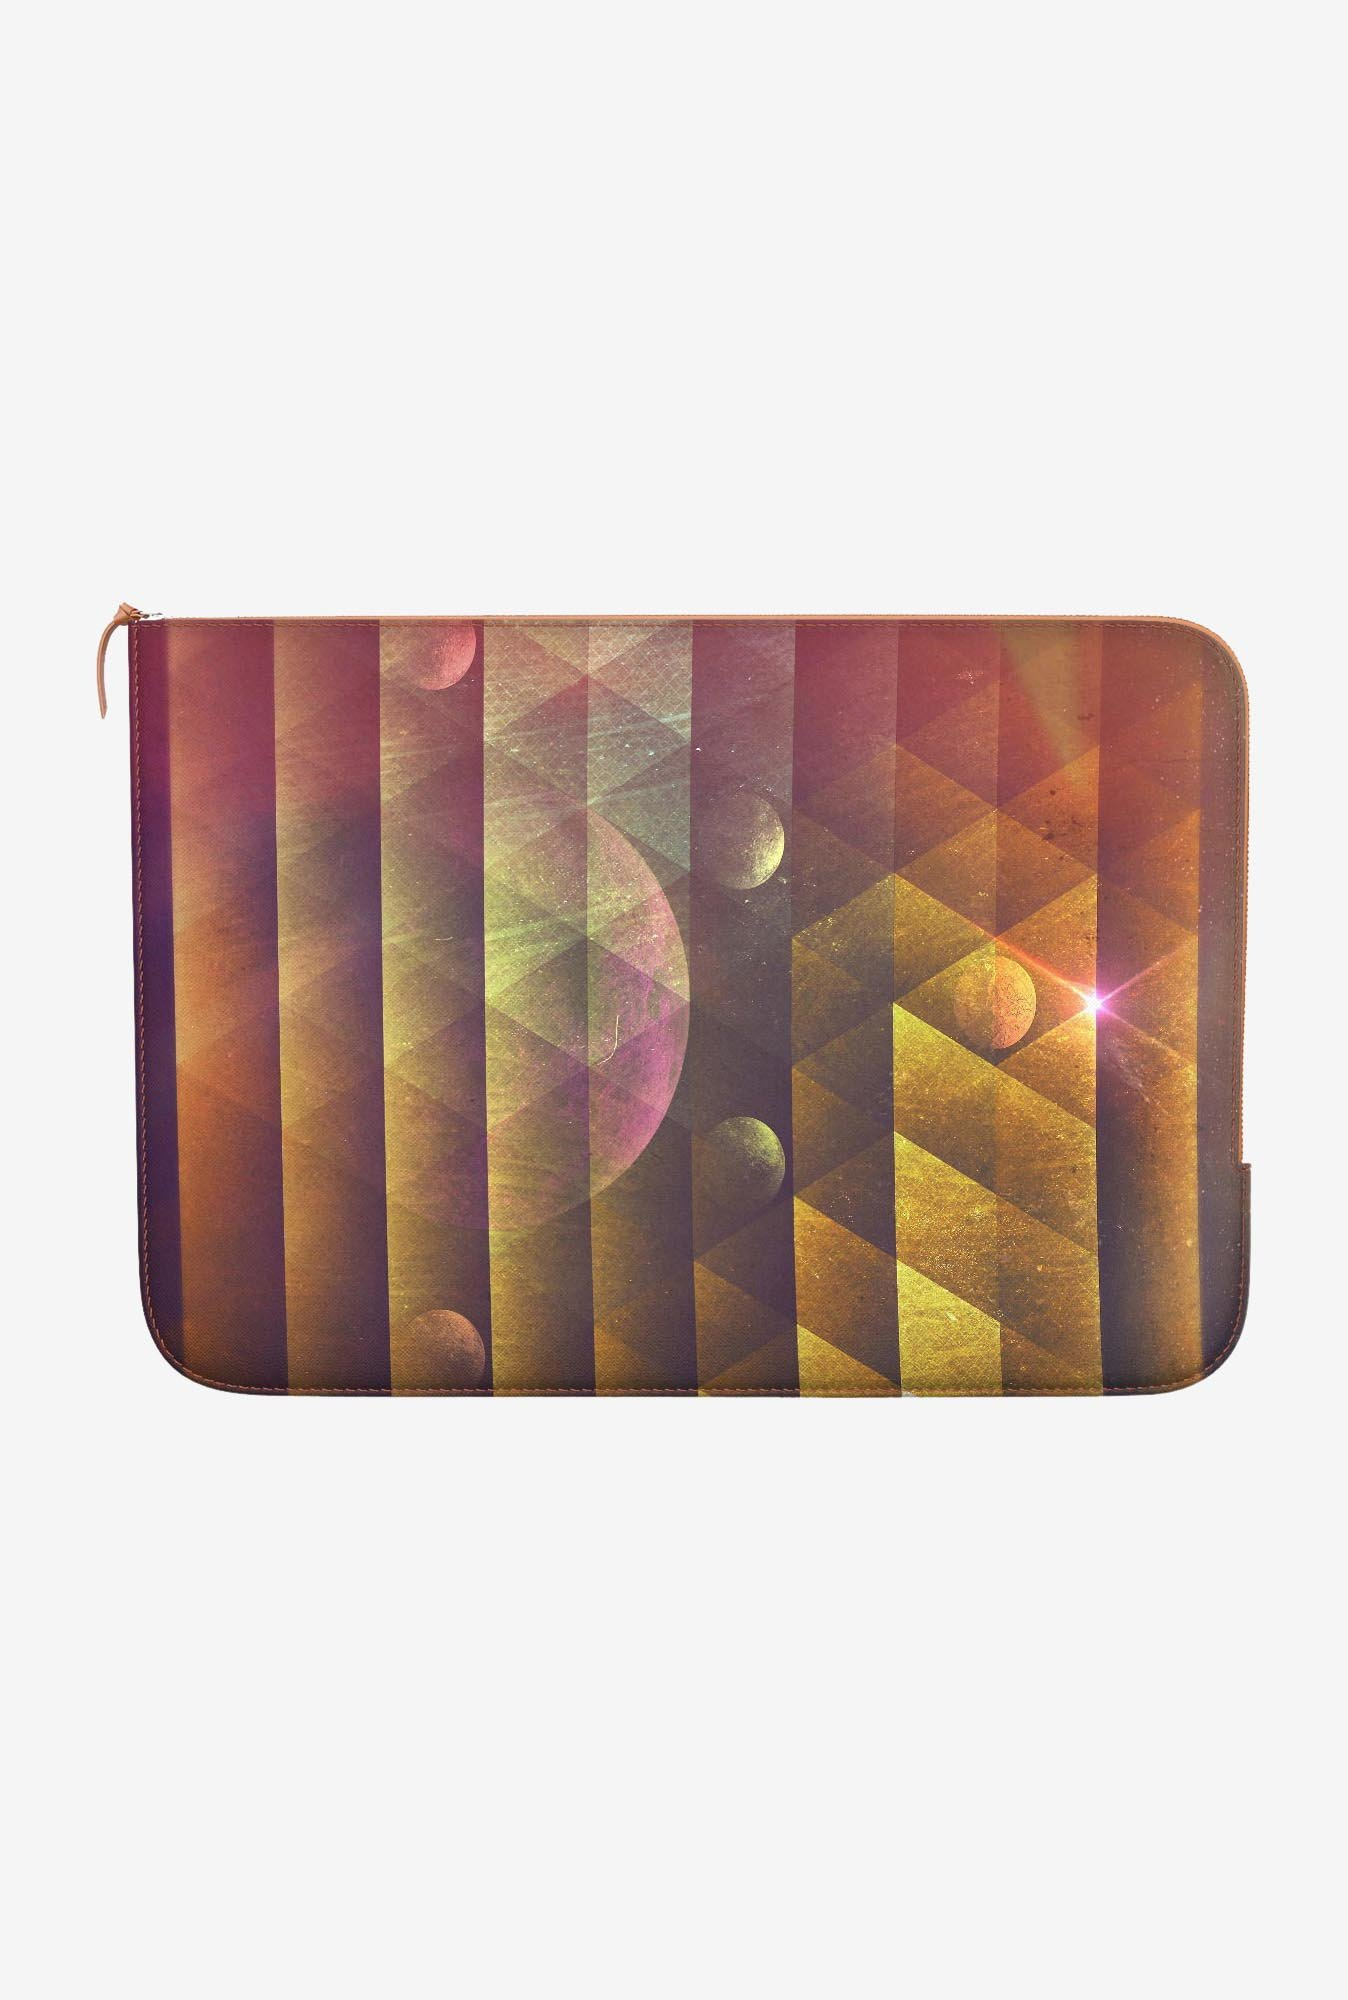 DailyObjects Pyncyl Myx Hrxtl Macbook Air 11 Zippered Sleeve